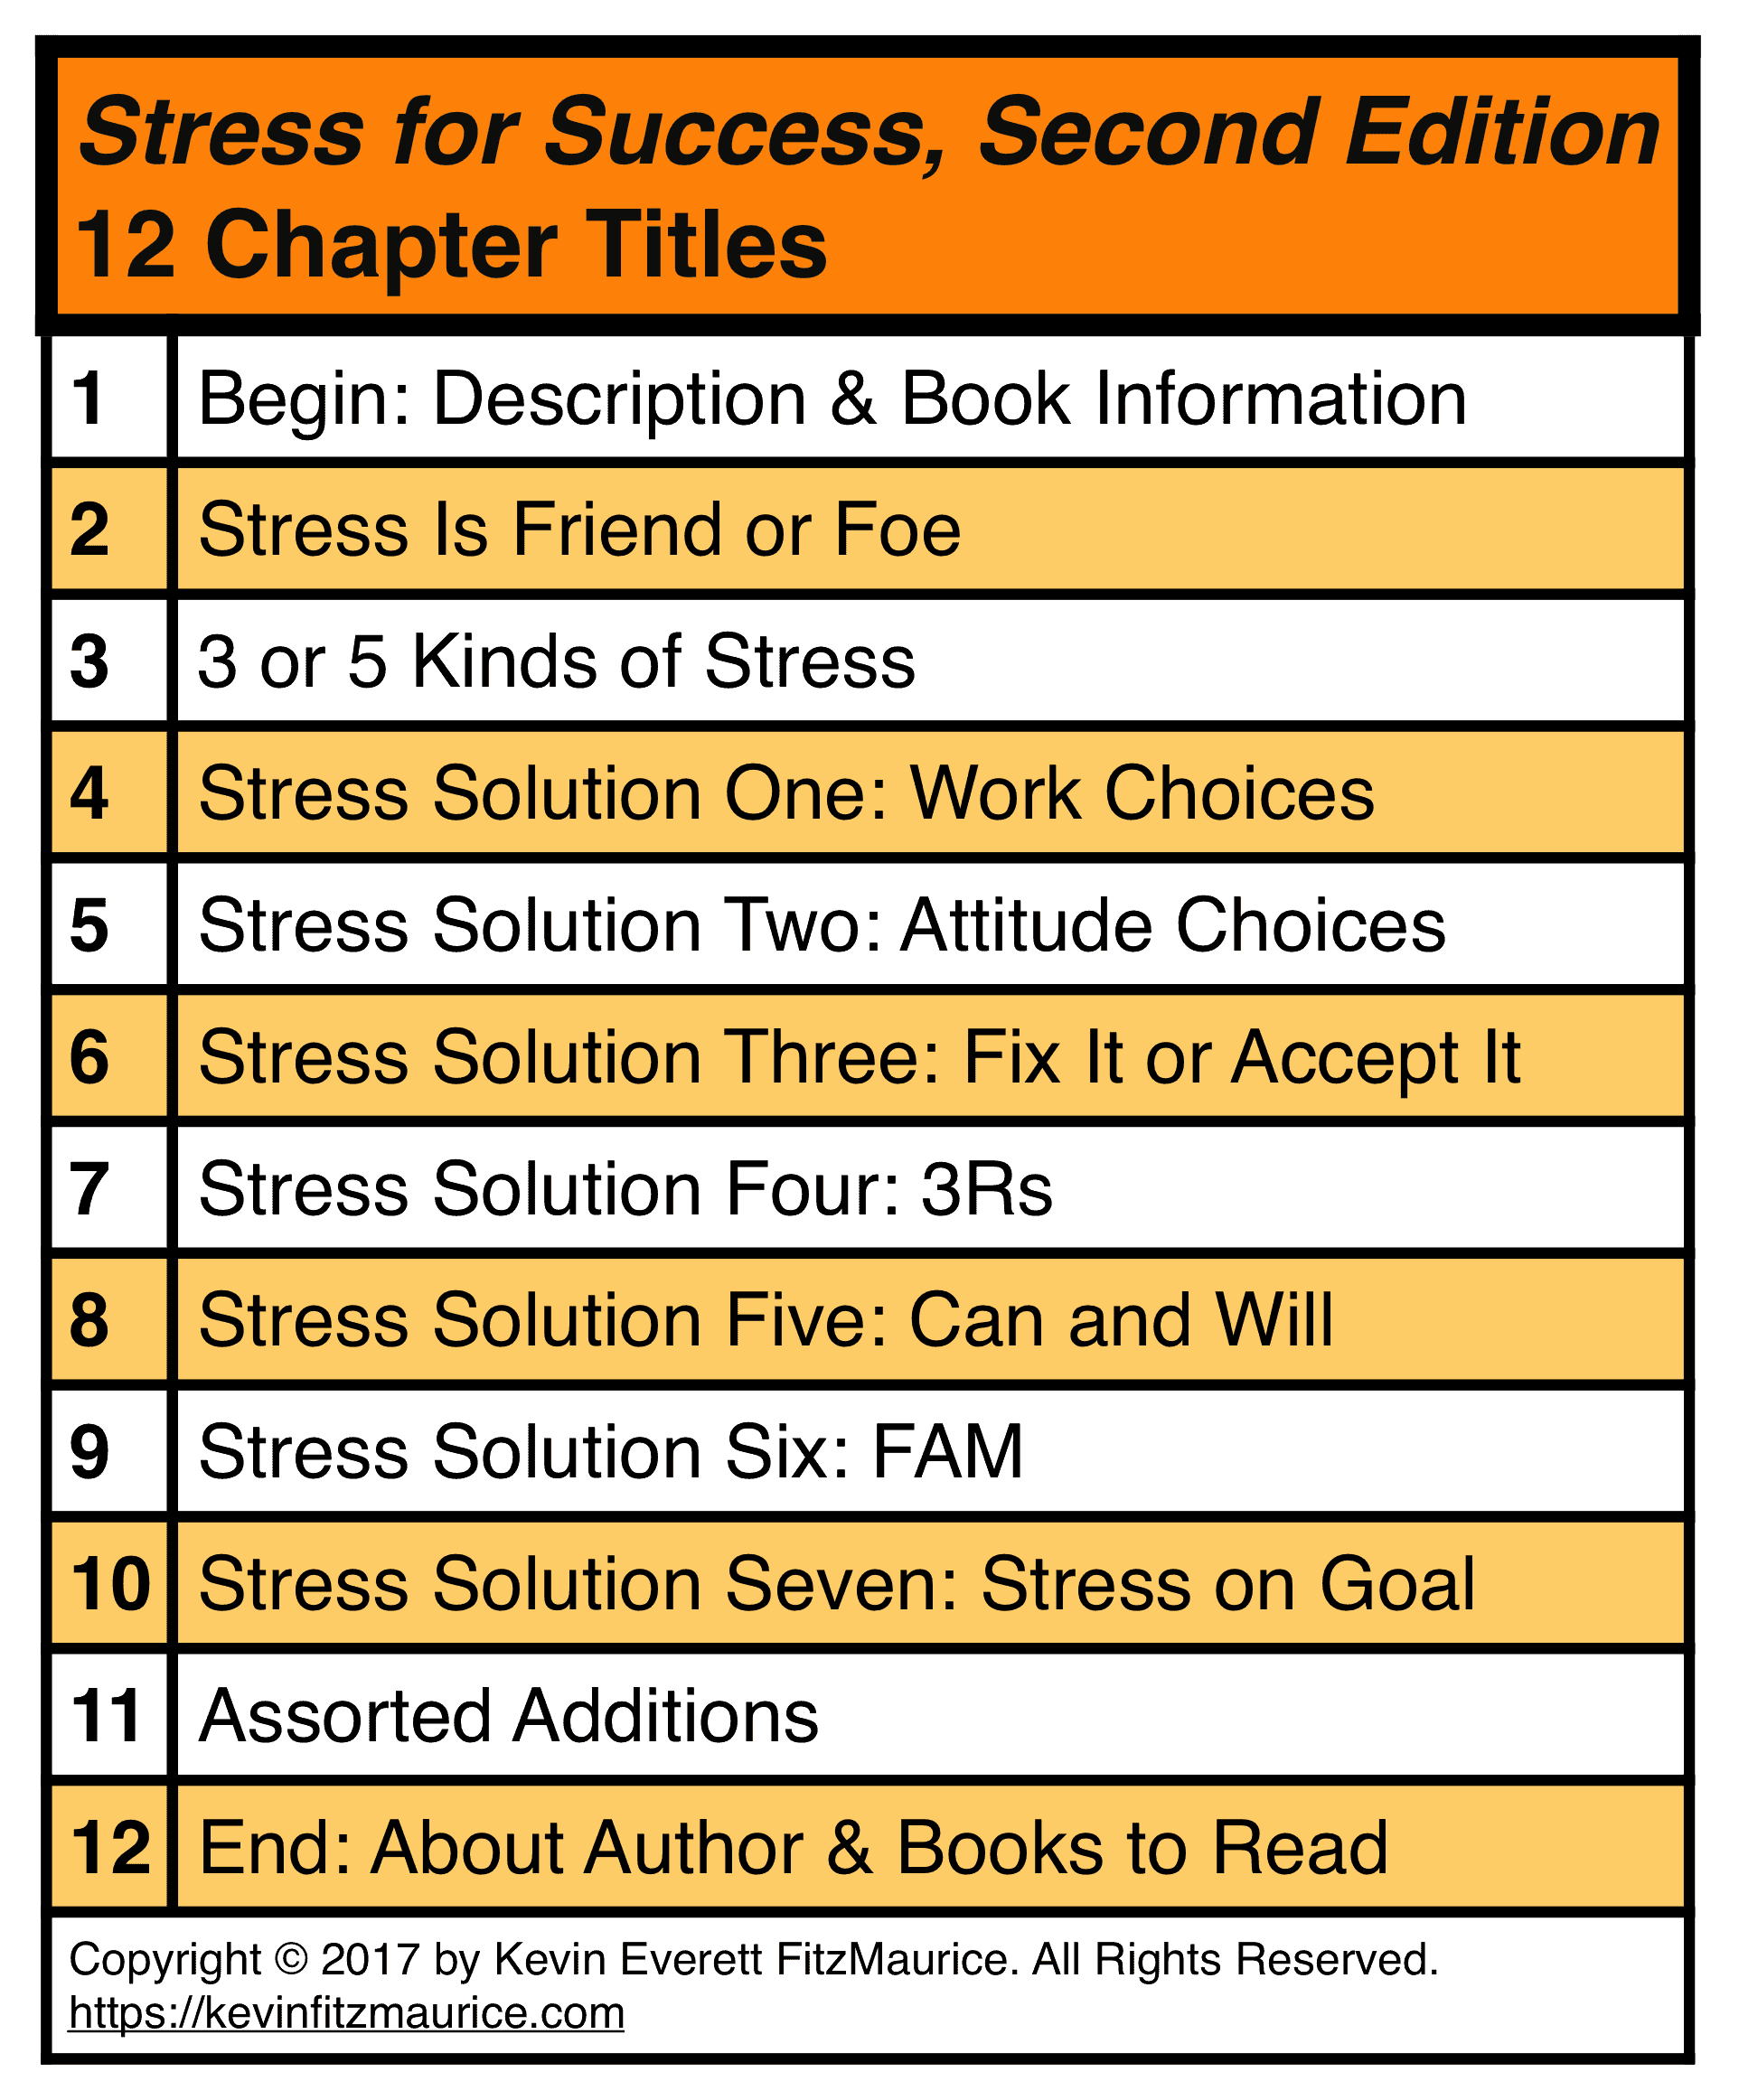 Stress for Success 12 Chapters